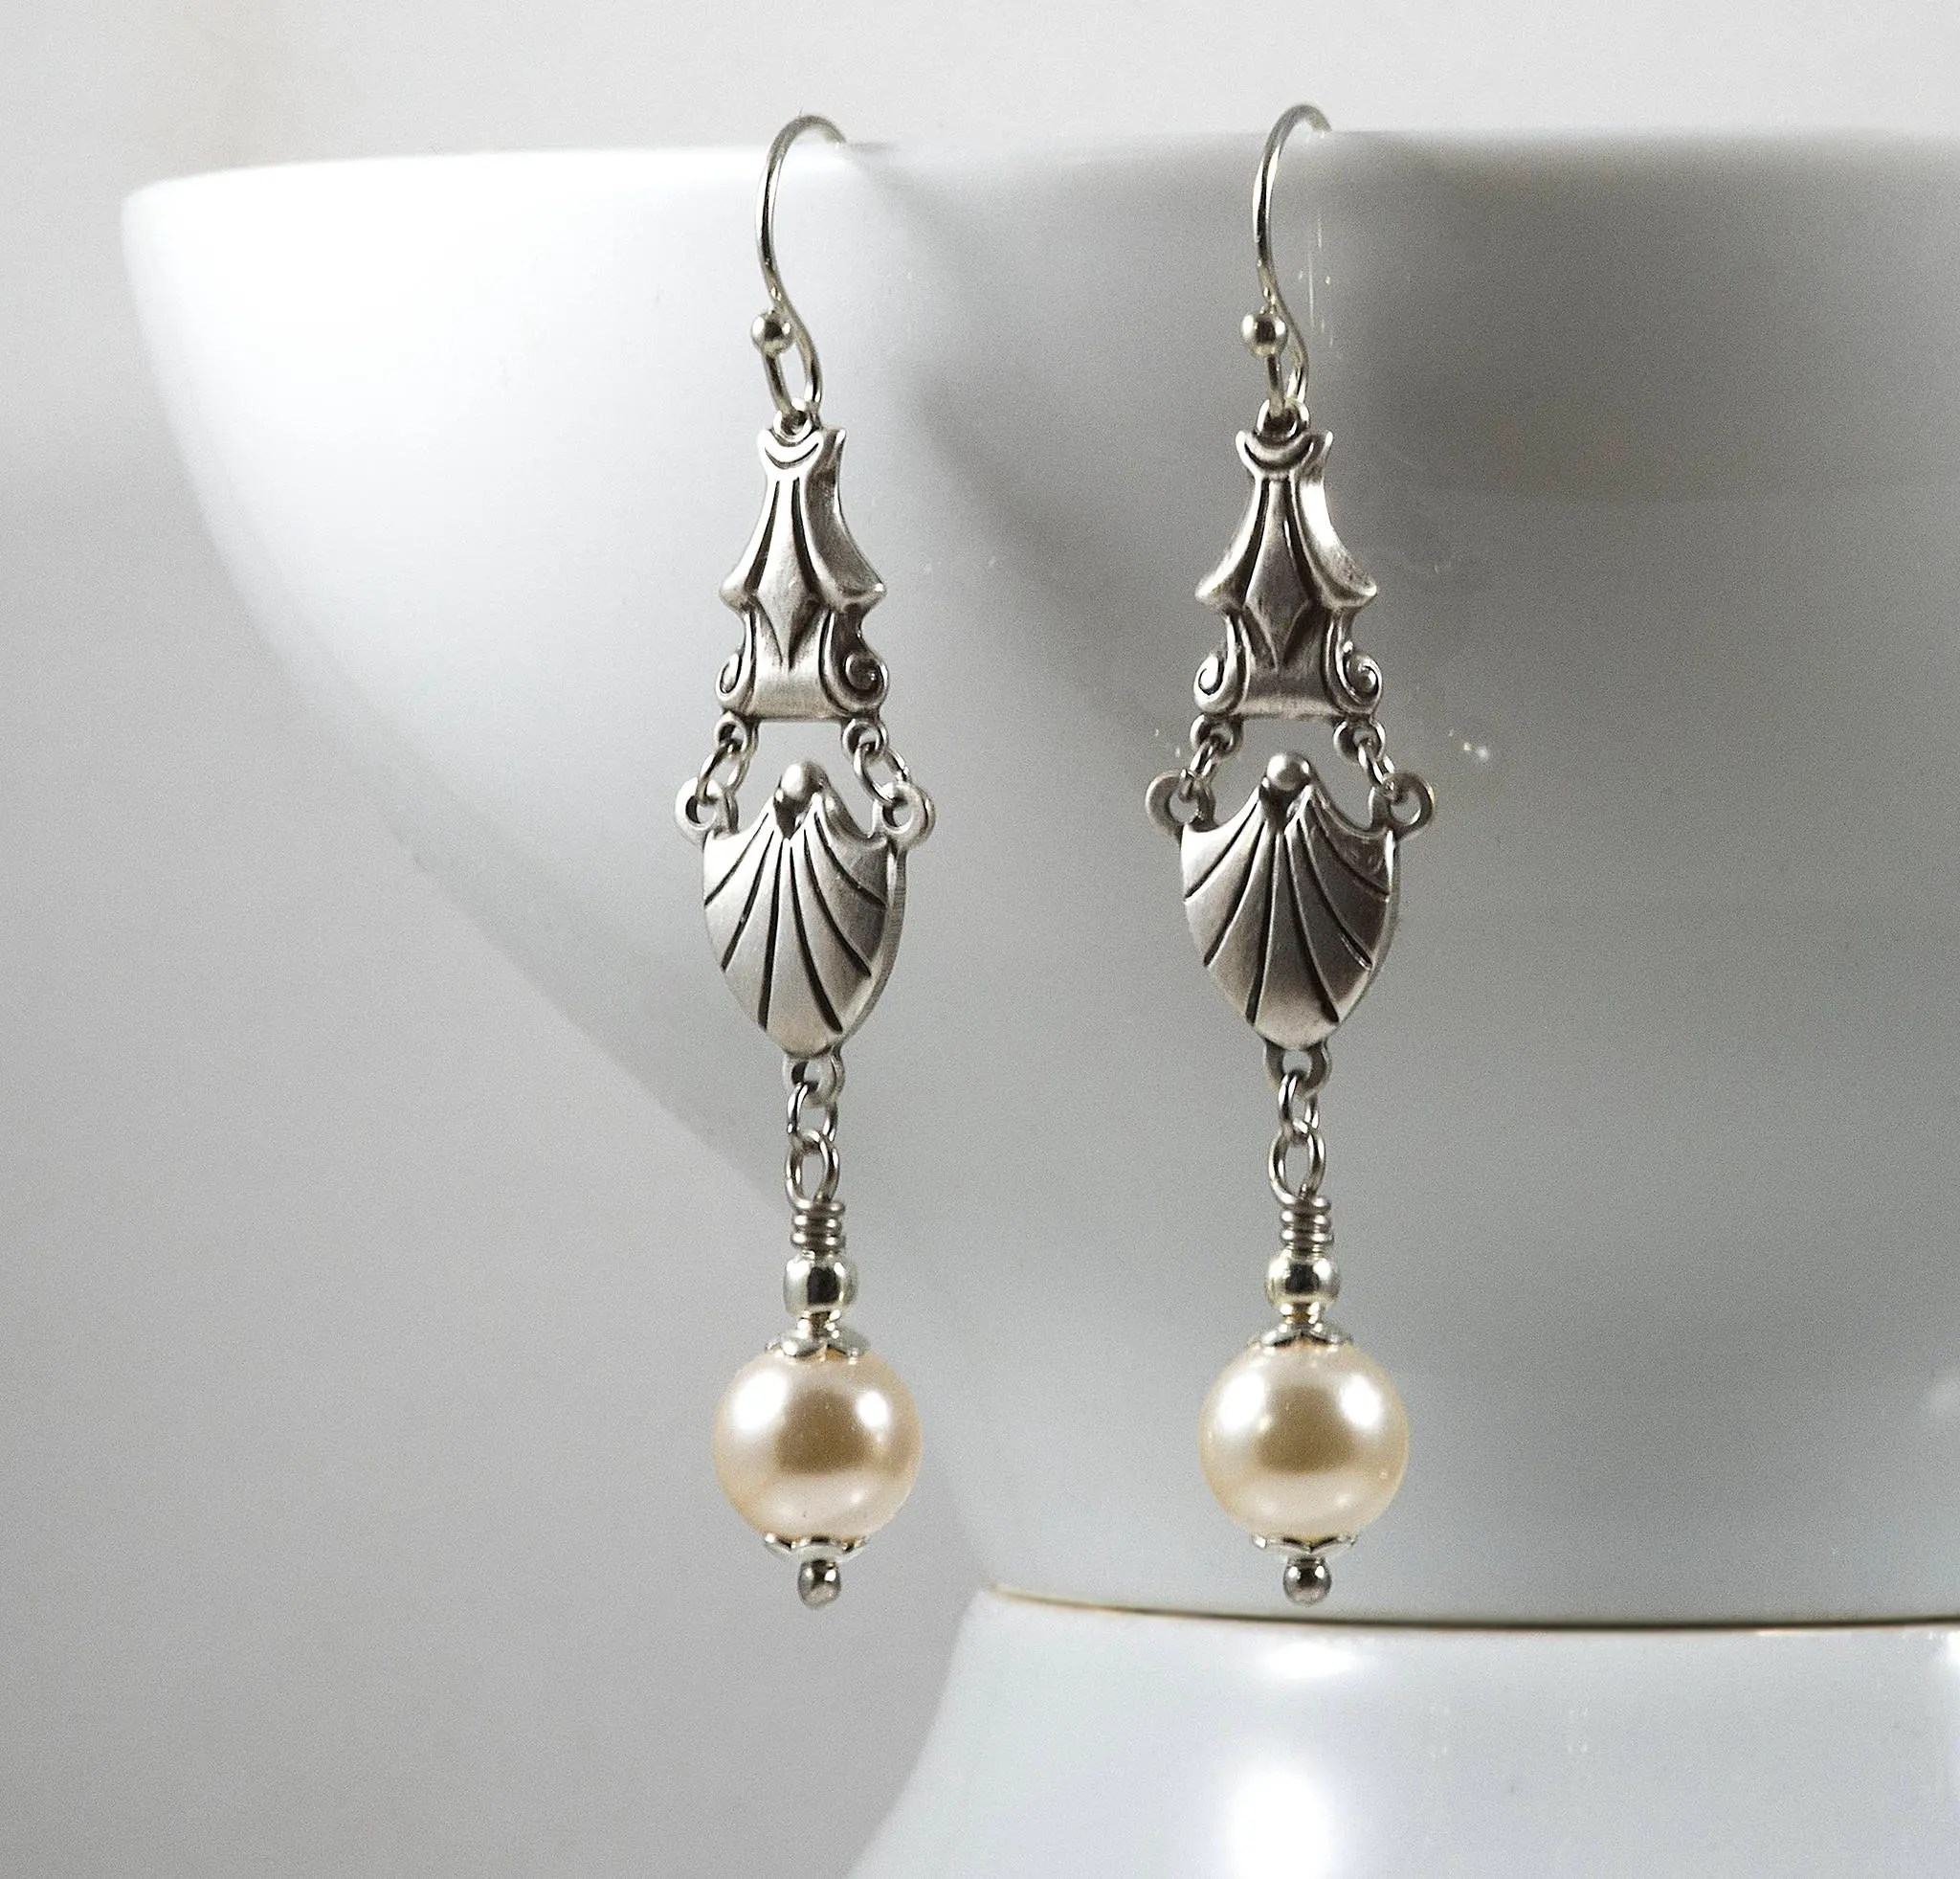 Art Deco Style Earrings Uk Art Deco Style Earrings Swarovski Pearls Sterling Silver Plated Connector Edwardian Earrings 1920s Downton Abbey Handmade Uk Gifts